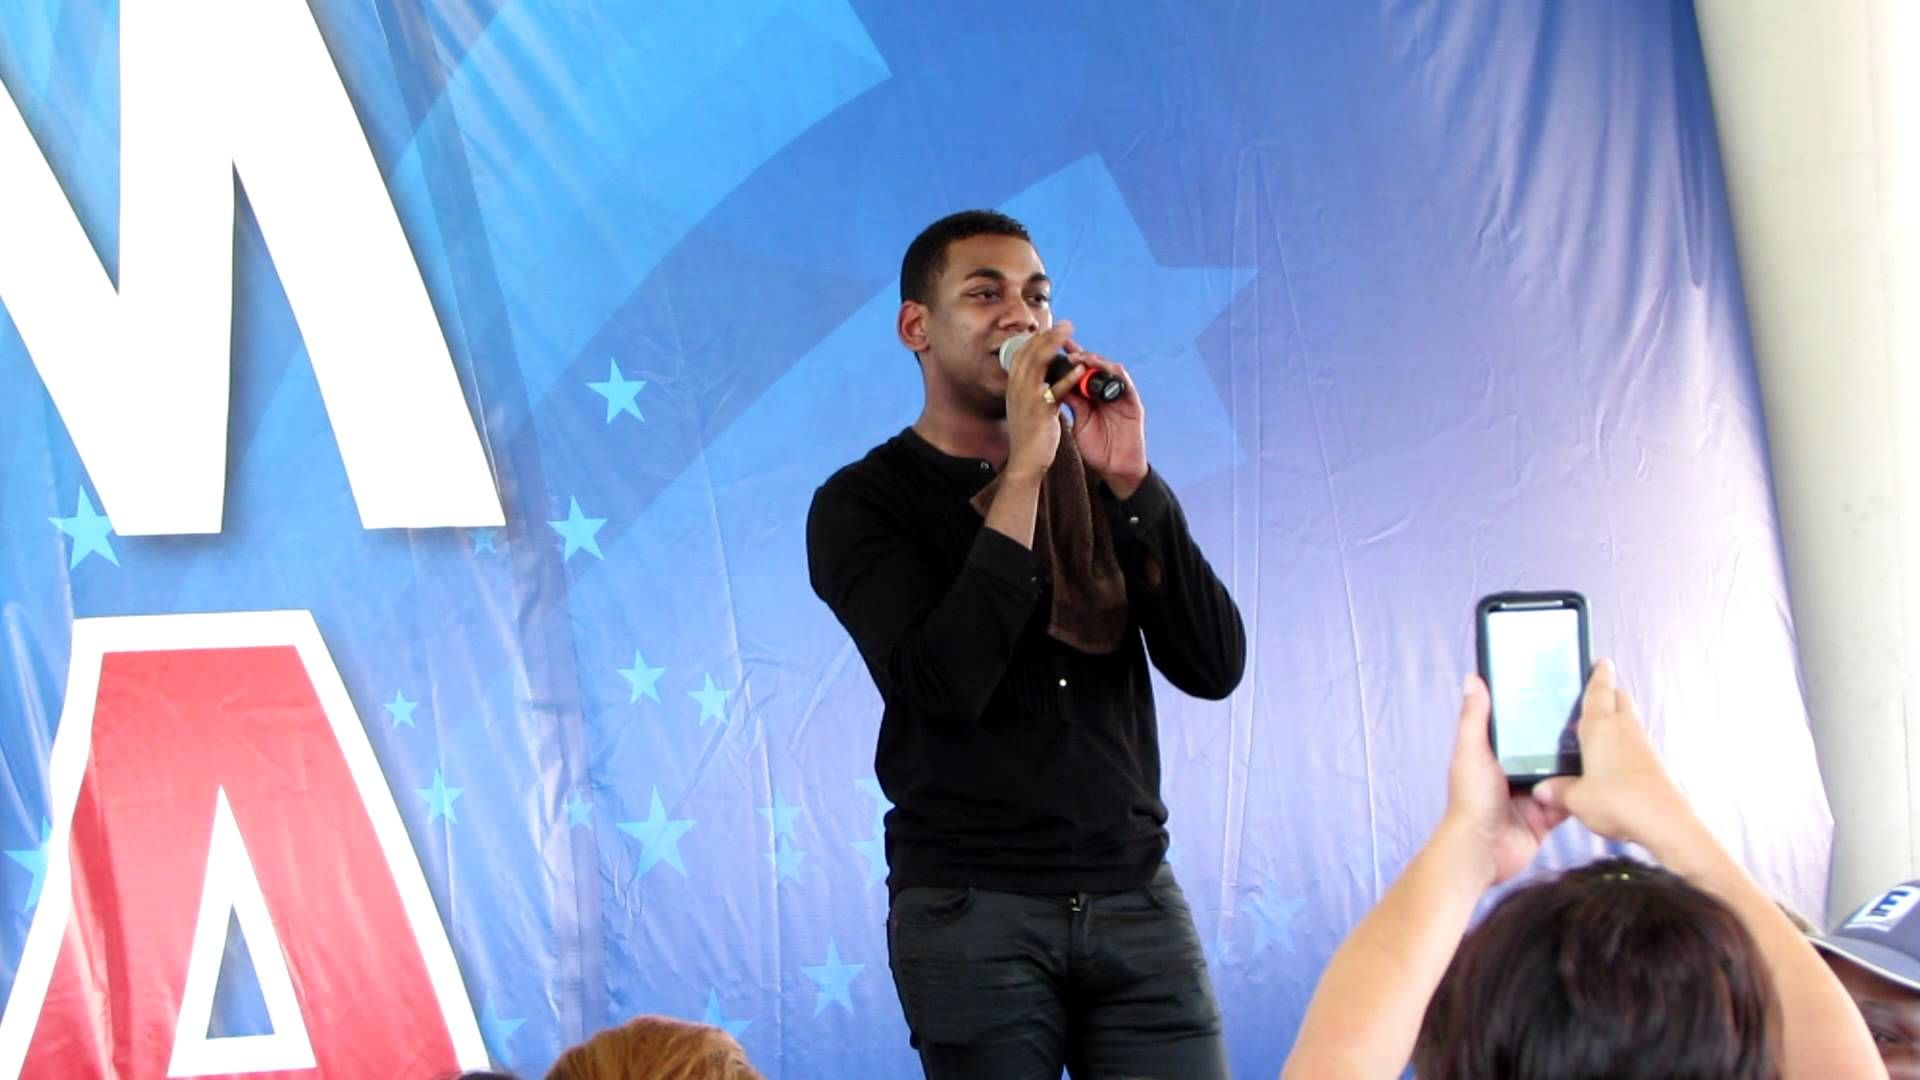 Joshua Ledet-His Eye is on the Sparrow (just voice) hometown